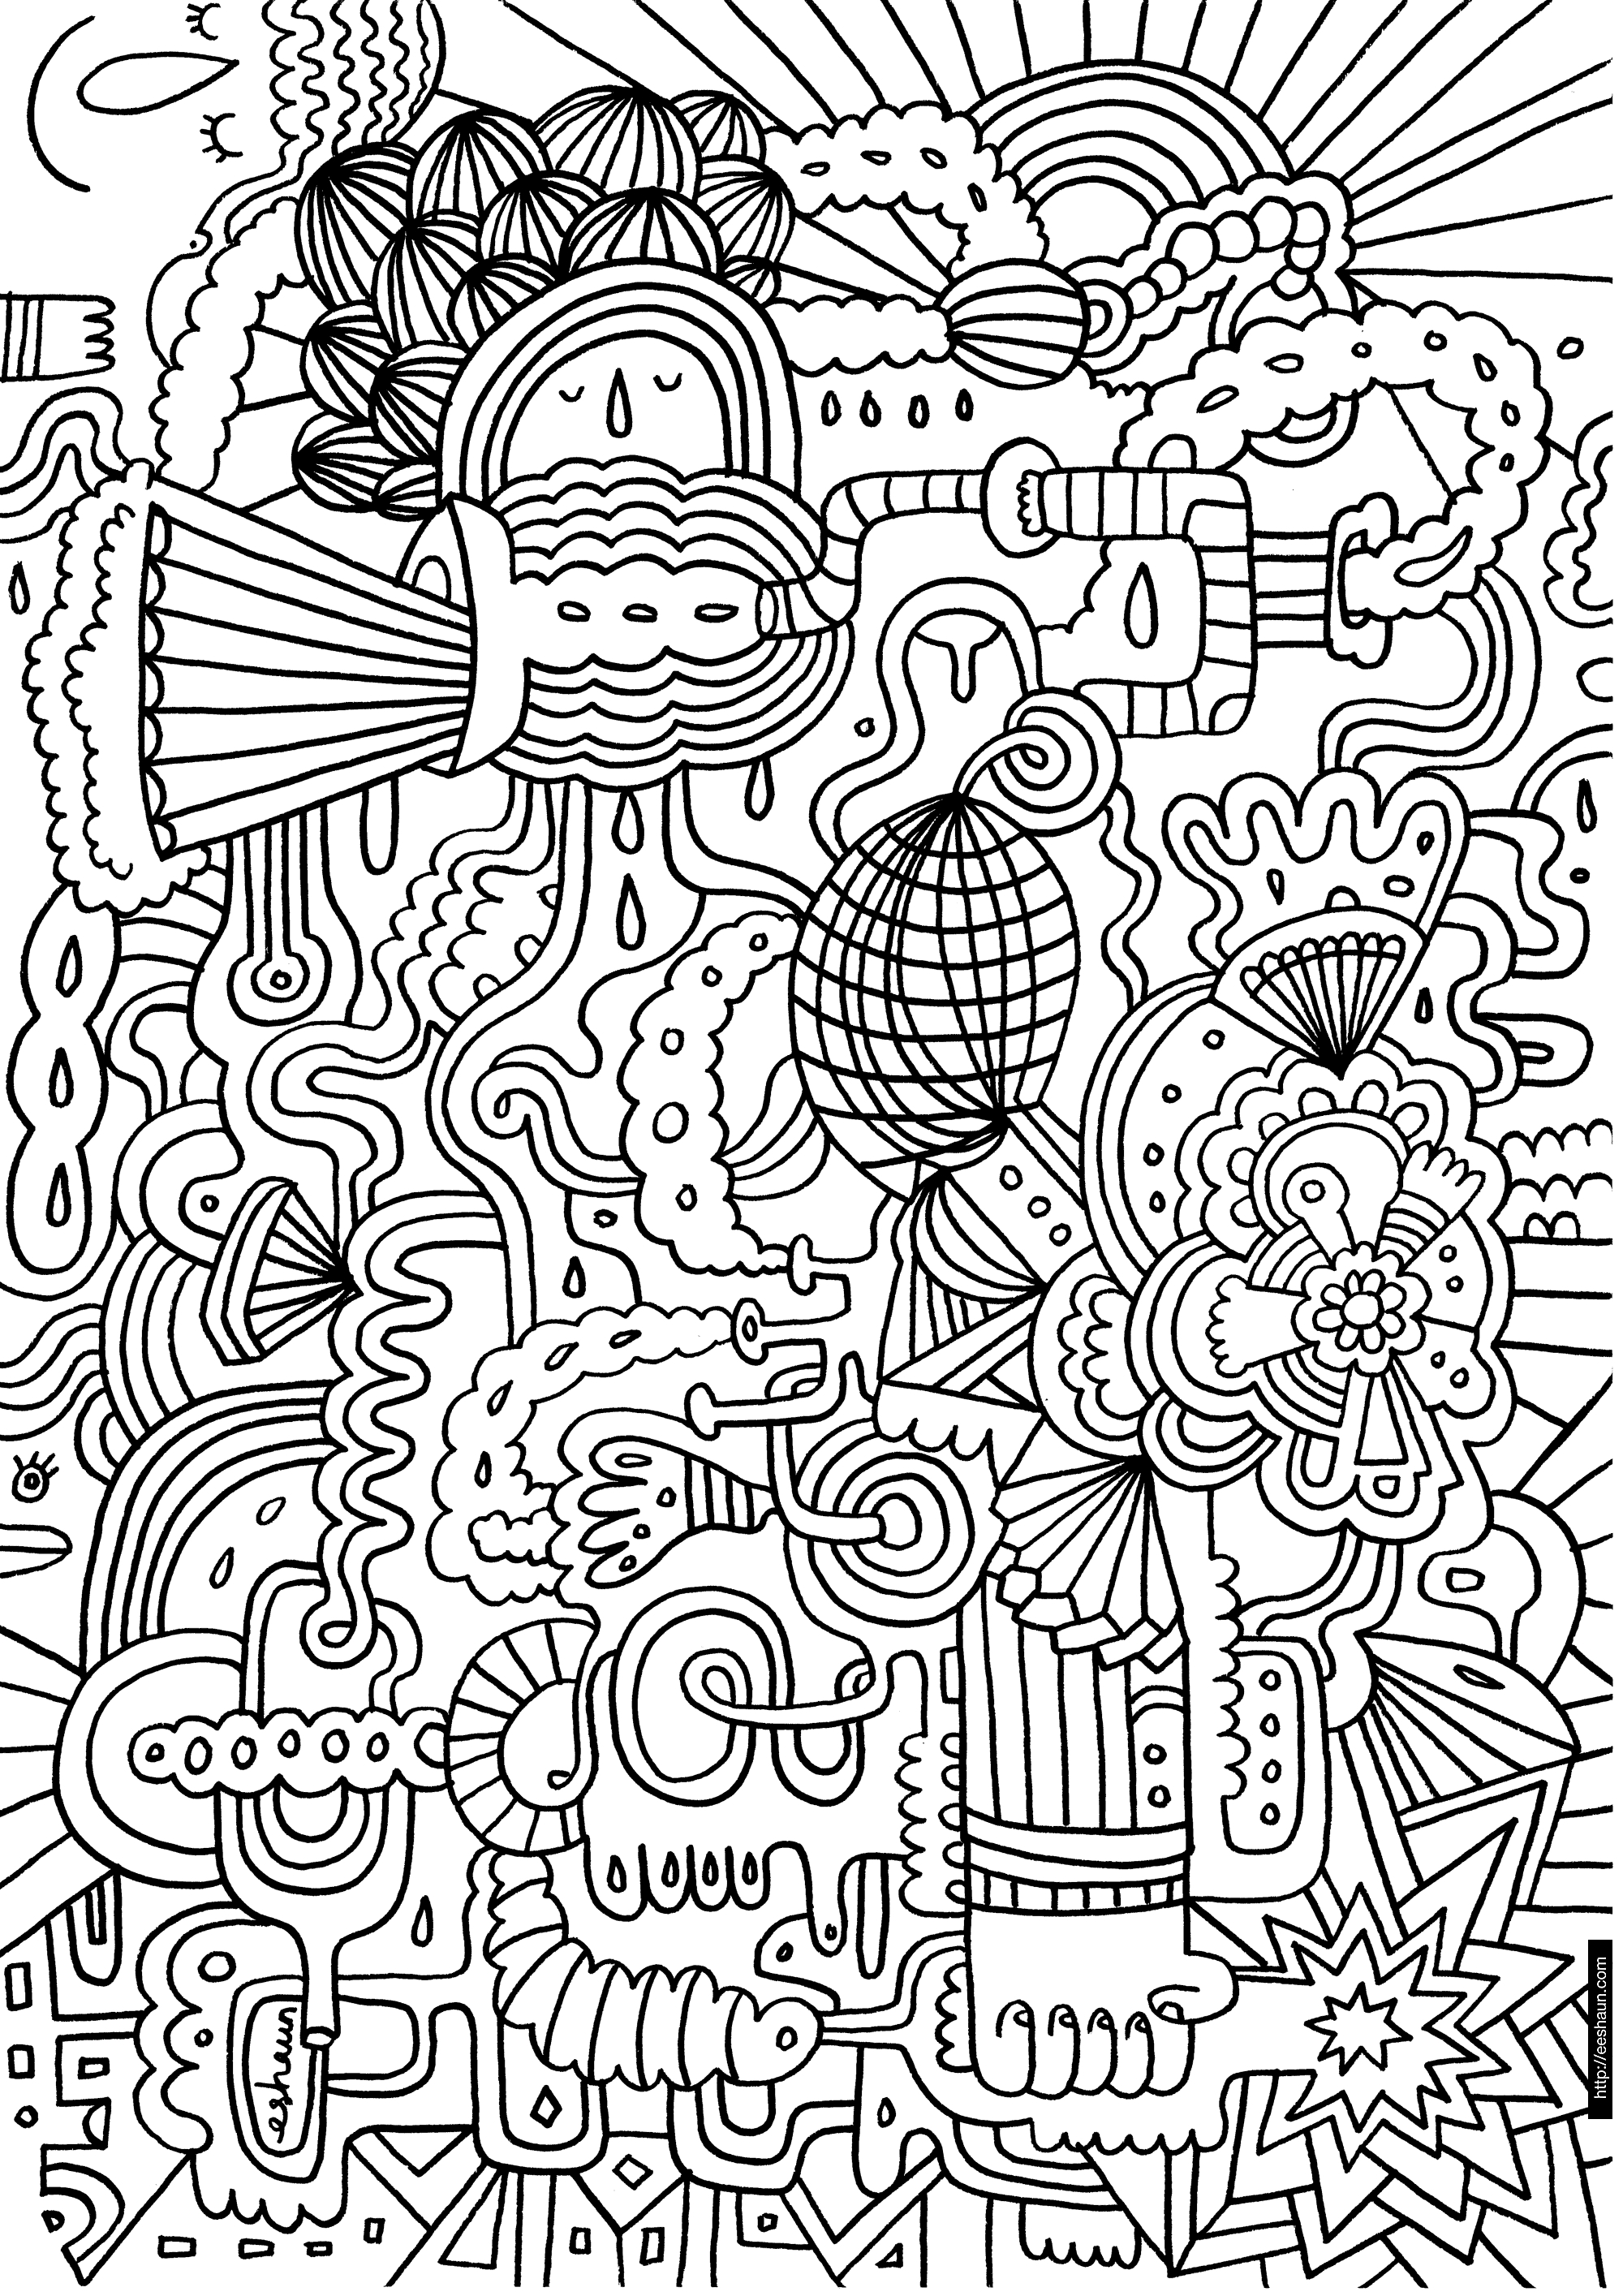 Christmas Coloring Sheets For Older Students With Difficult Pages Adults Gallery Free